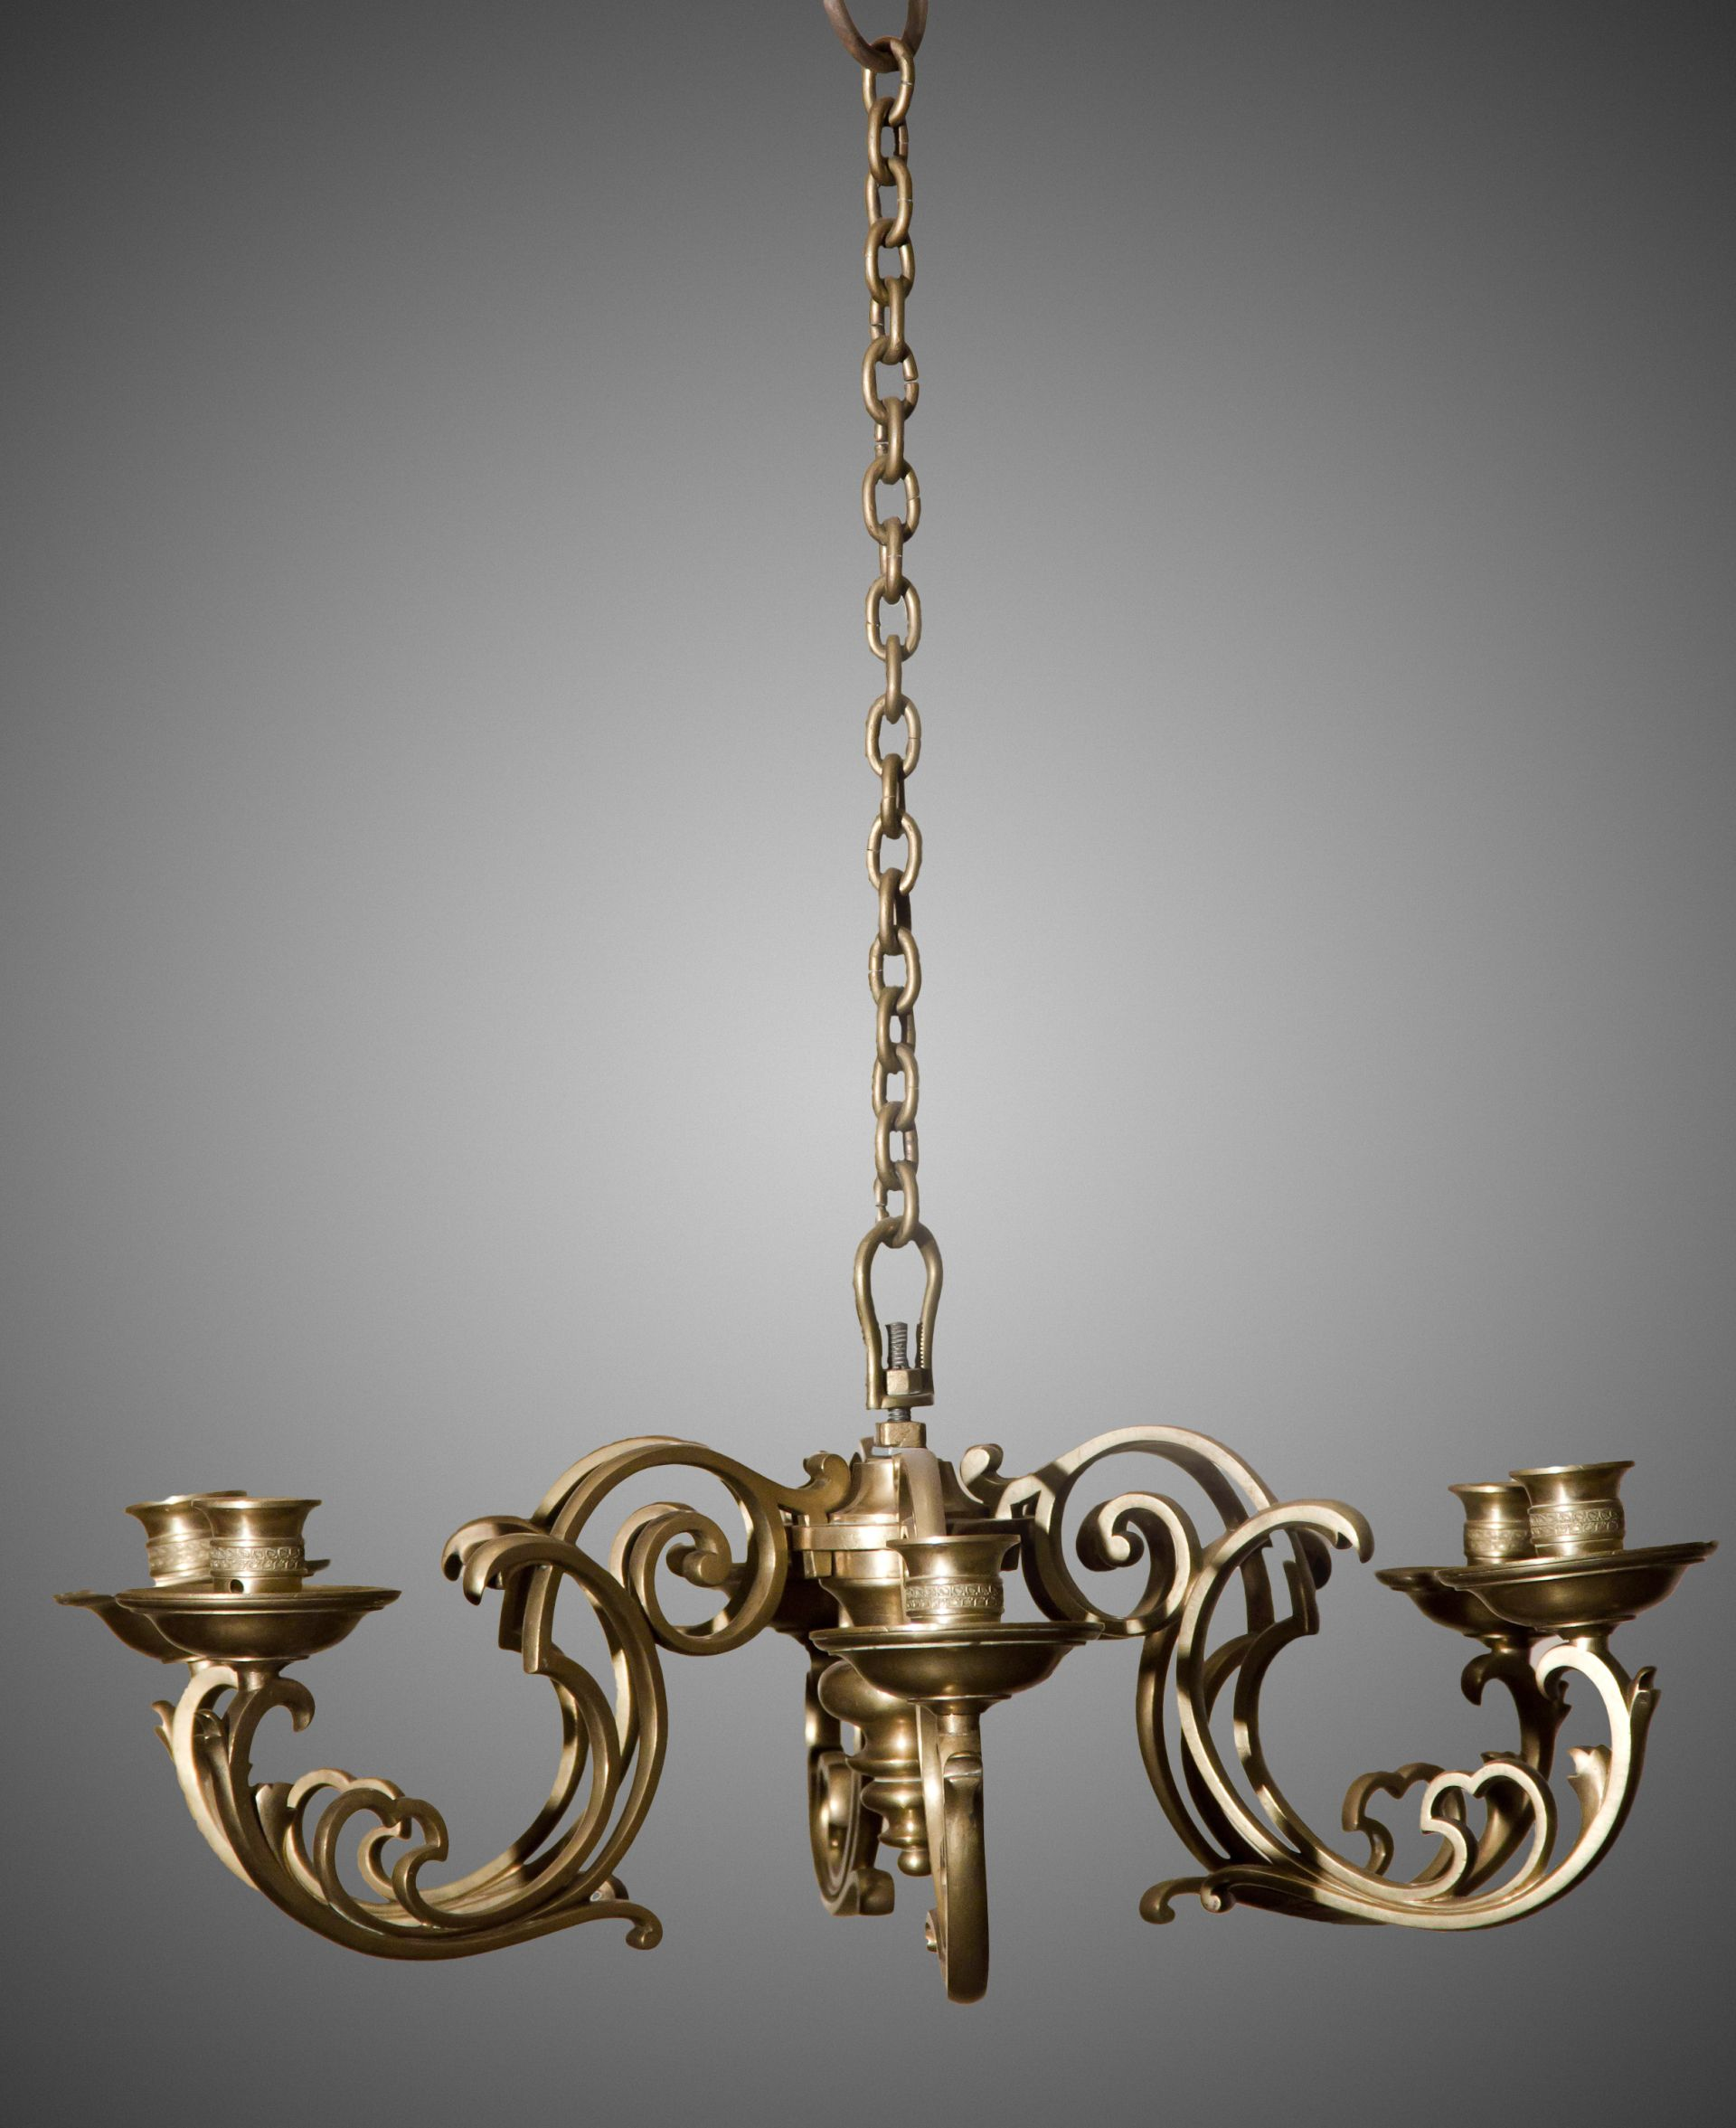 Chandelier, 1825–1875 (?), Lithuanian Art Museum, TM-2334. Photo by Tomas Kapočius, 2013